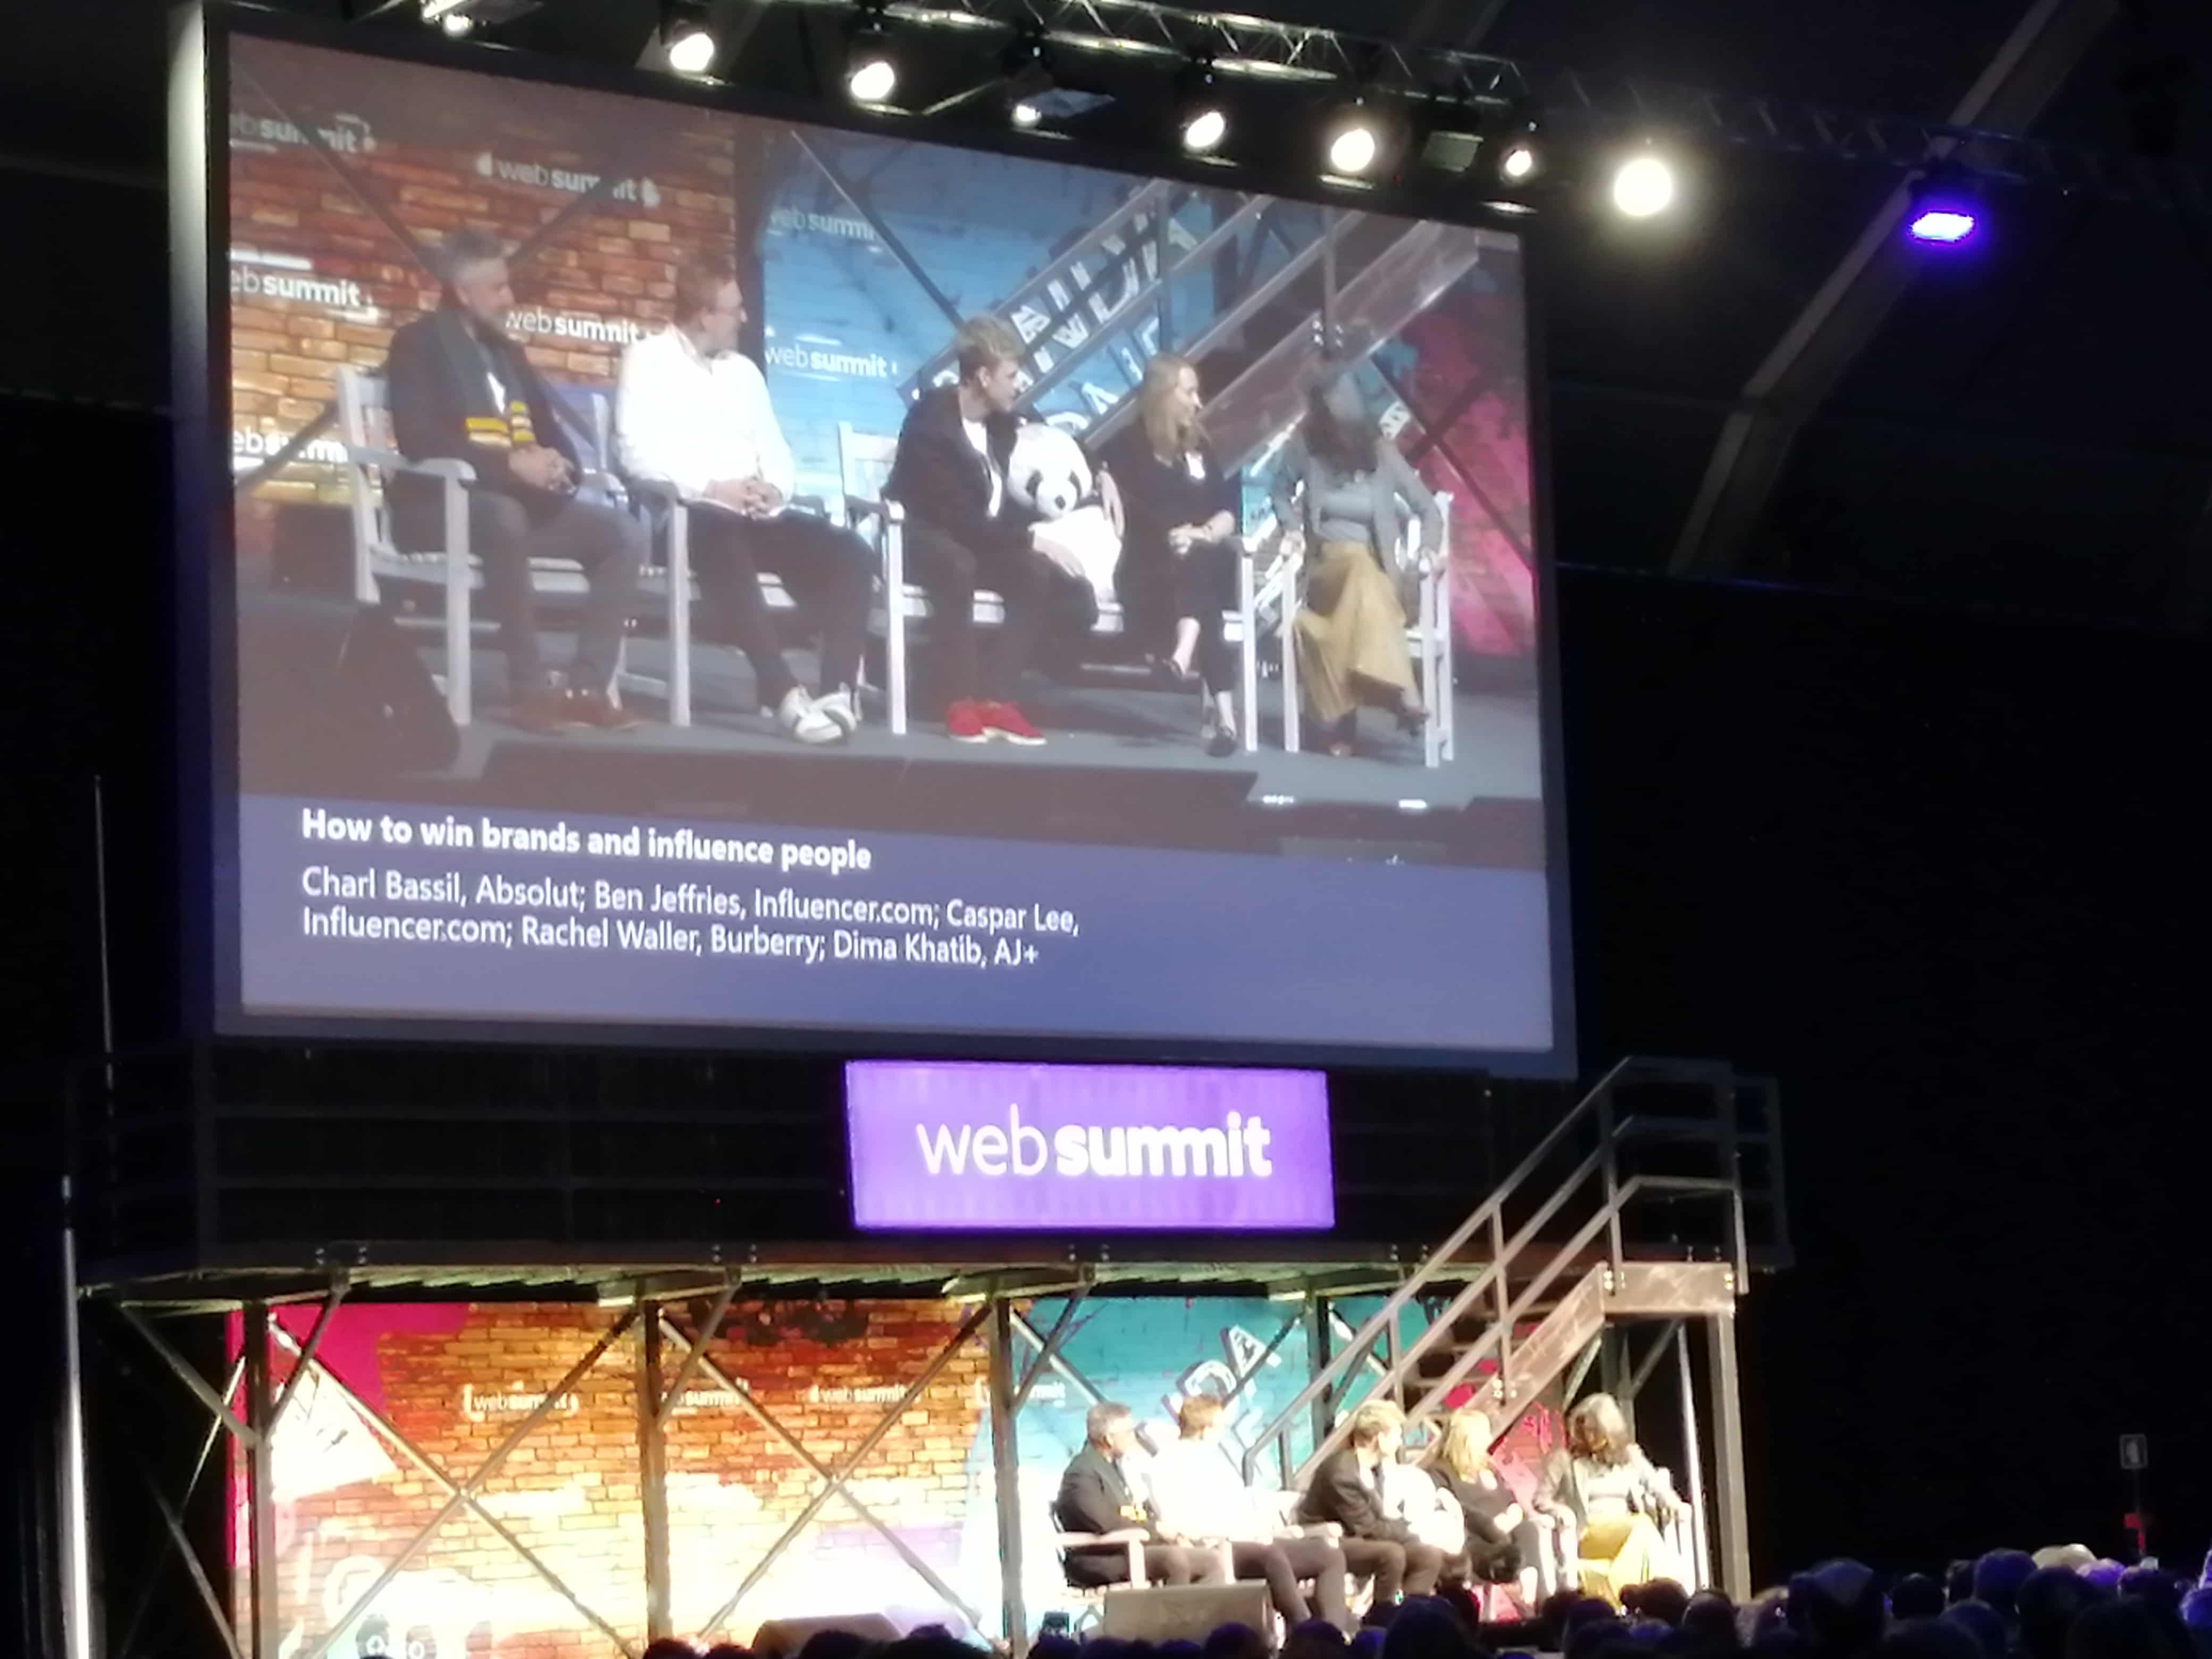 How to win brands and influence people - Web Summit 2019